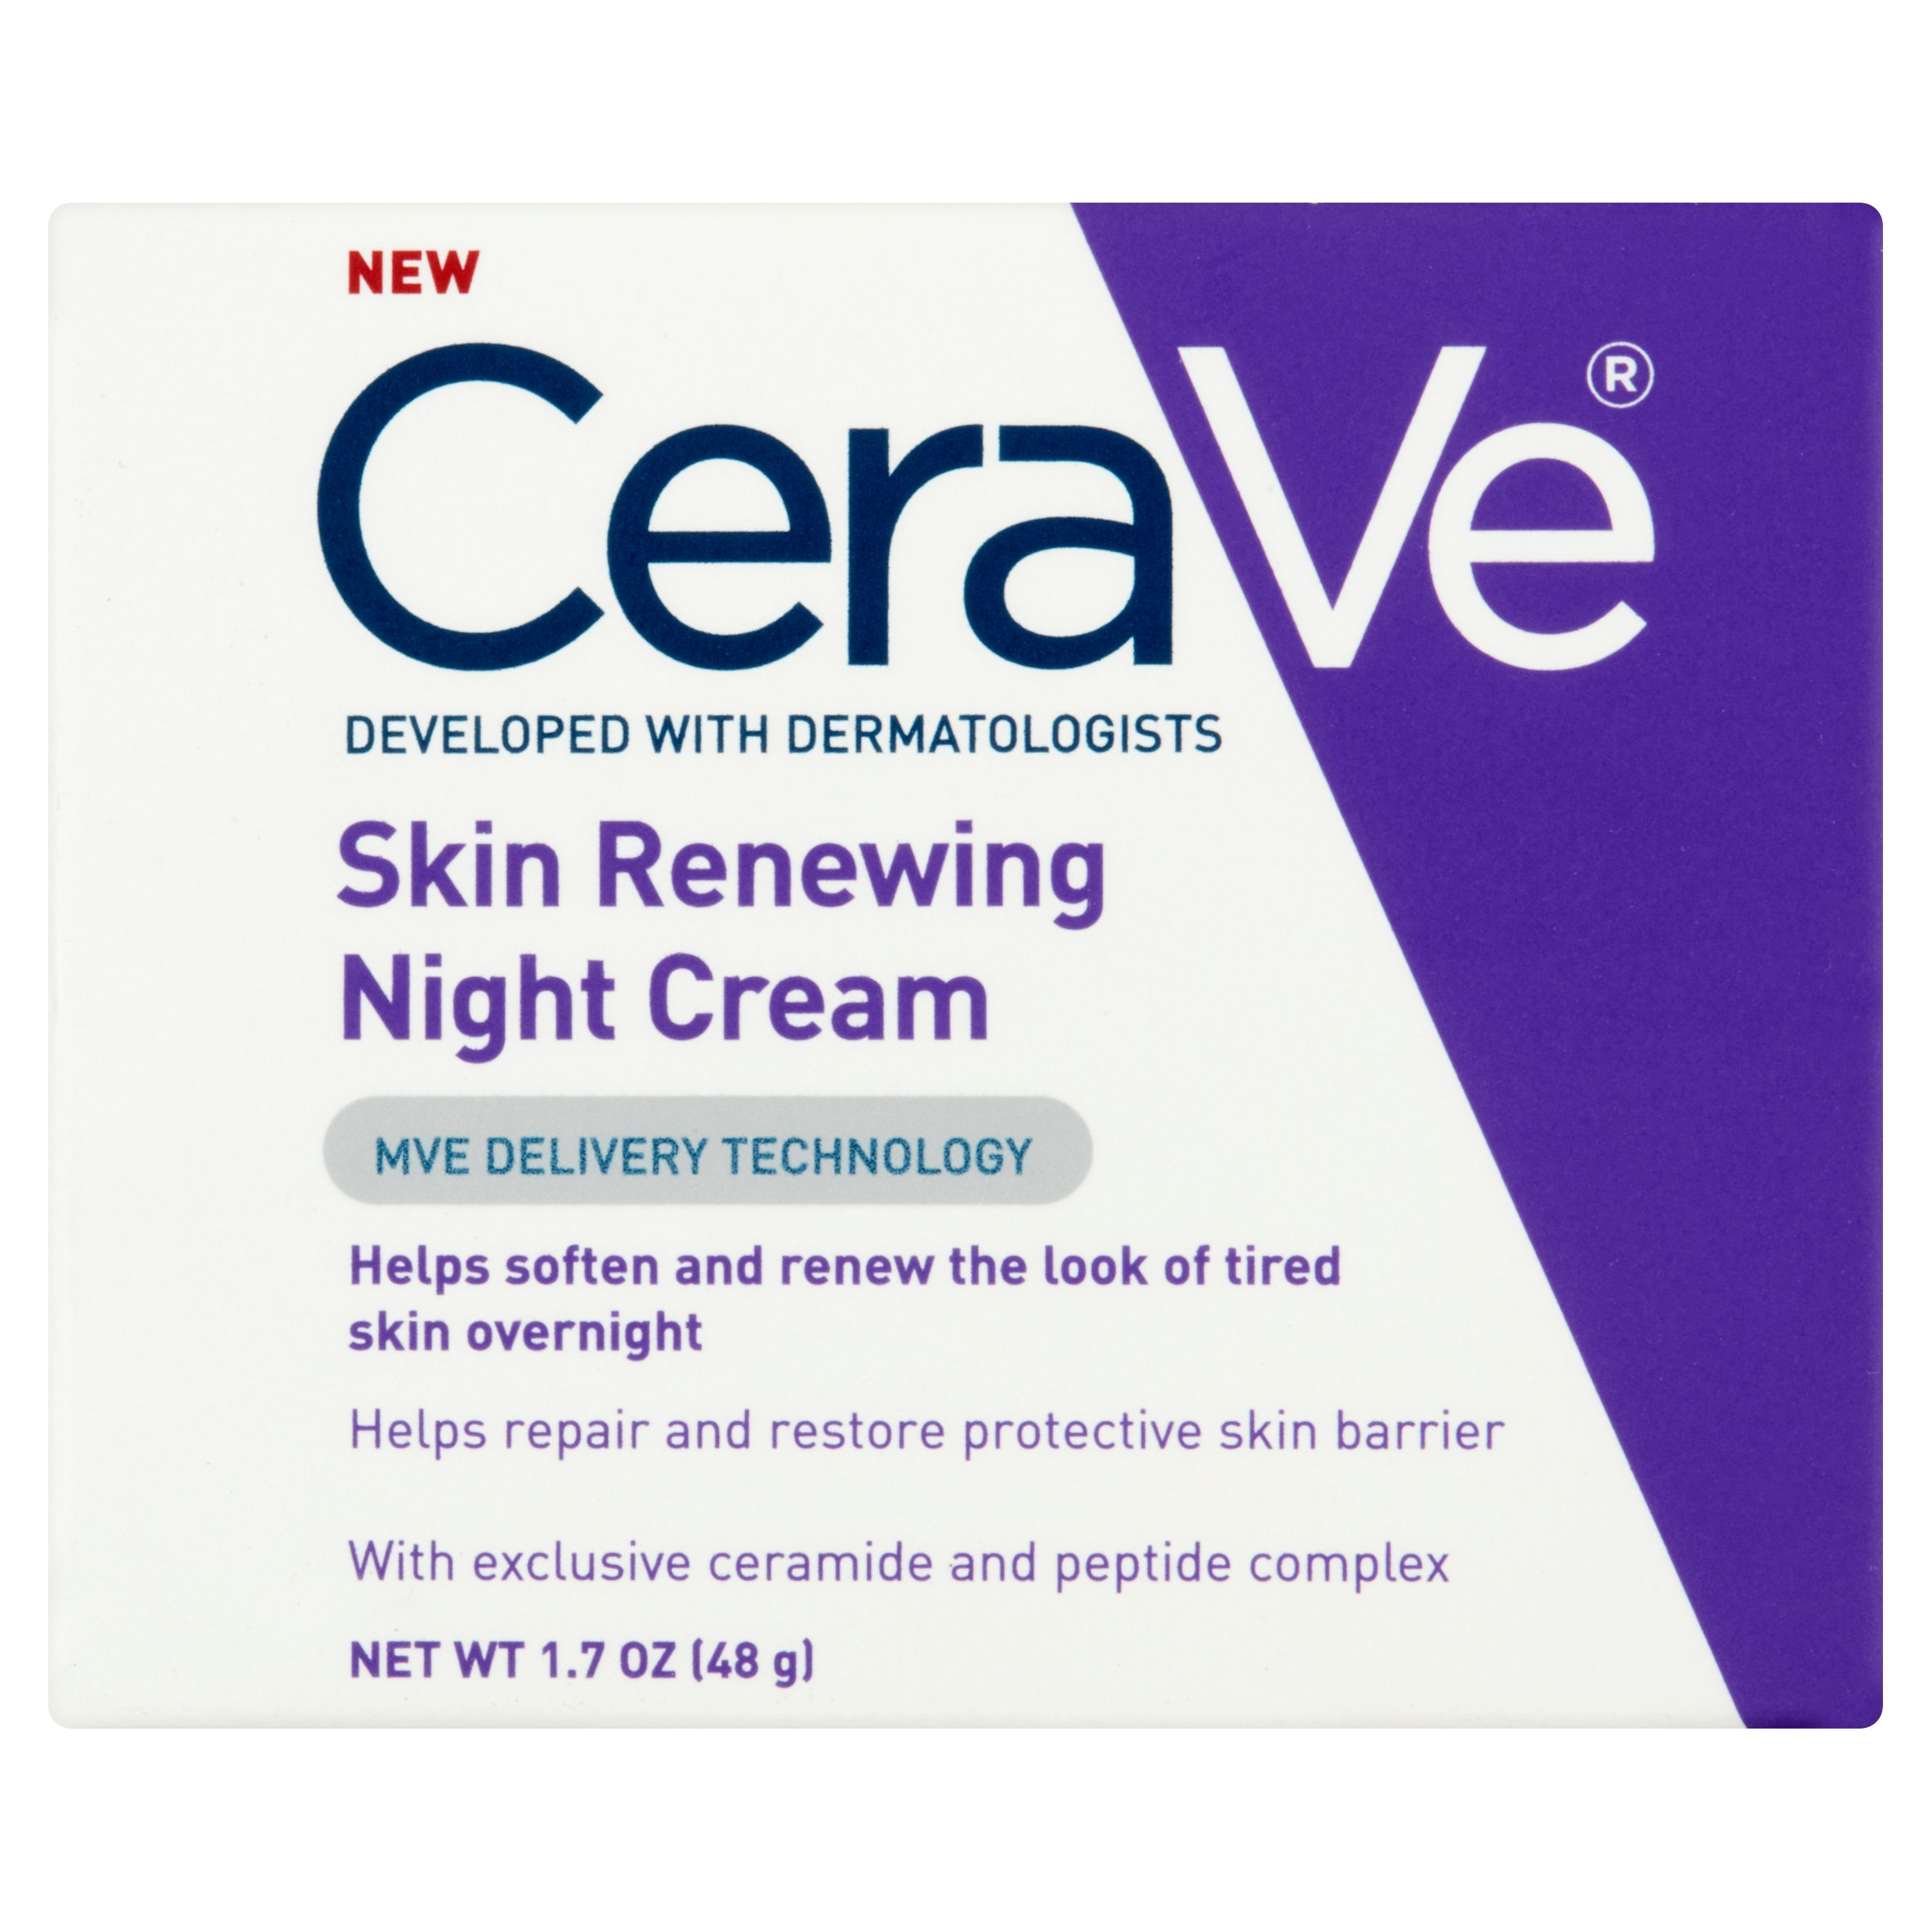 CeraVe Skin ReNewing Night Cream, 1.7 oz by Valeant Pharmaceuticals North America LLC